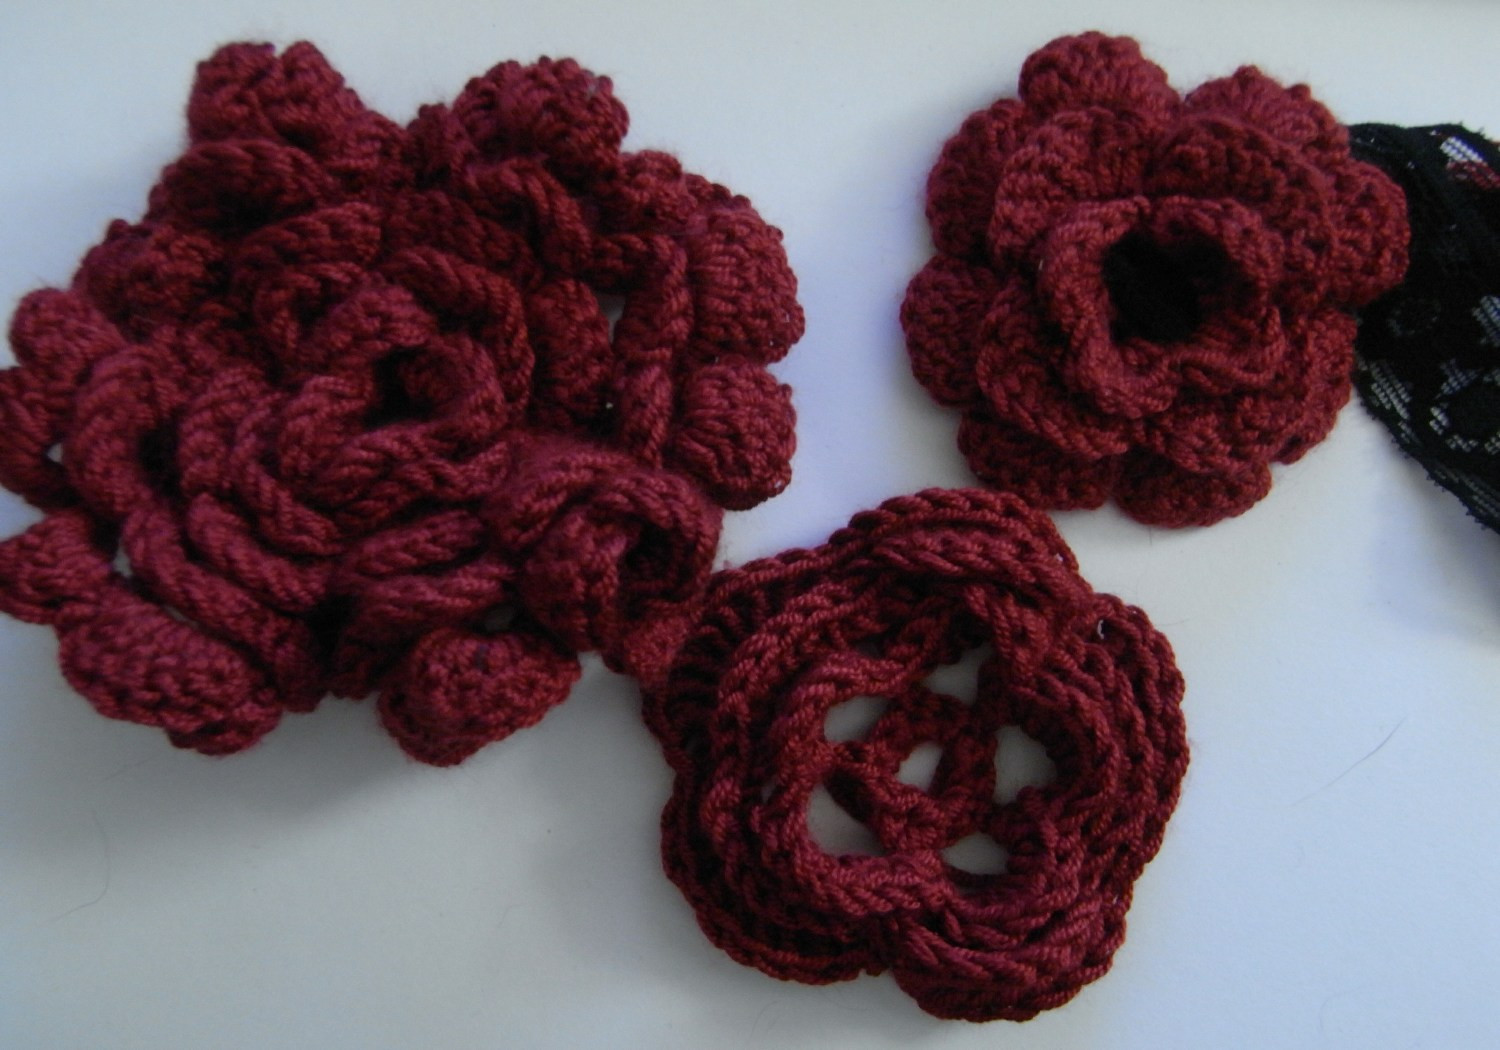 Free Crochet Flower Patterns Fresh Saraccino Crochet Flowers Of Amazing 42 Images Free Crochet Flower Patterns